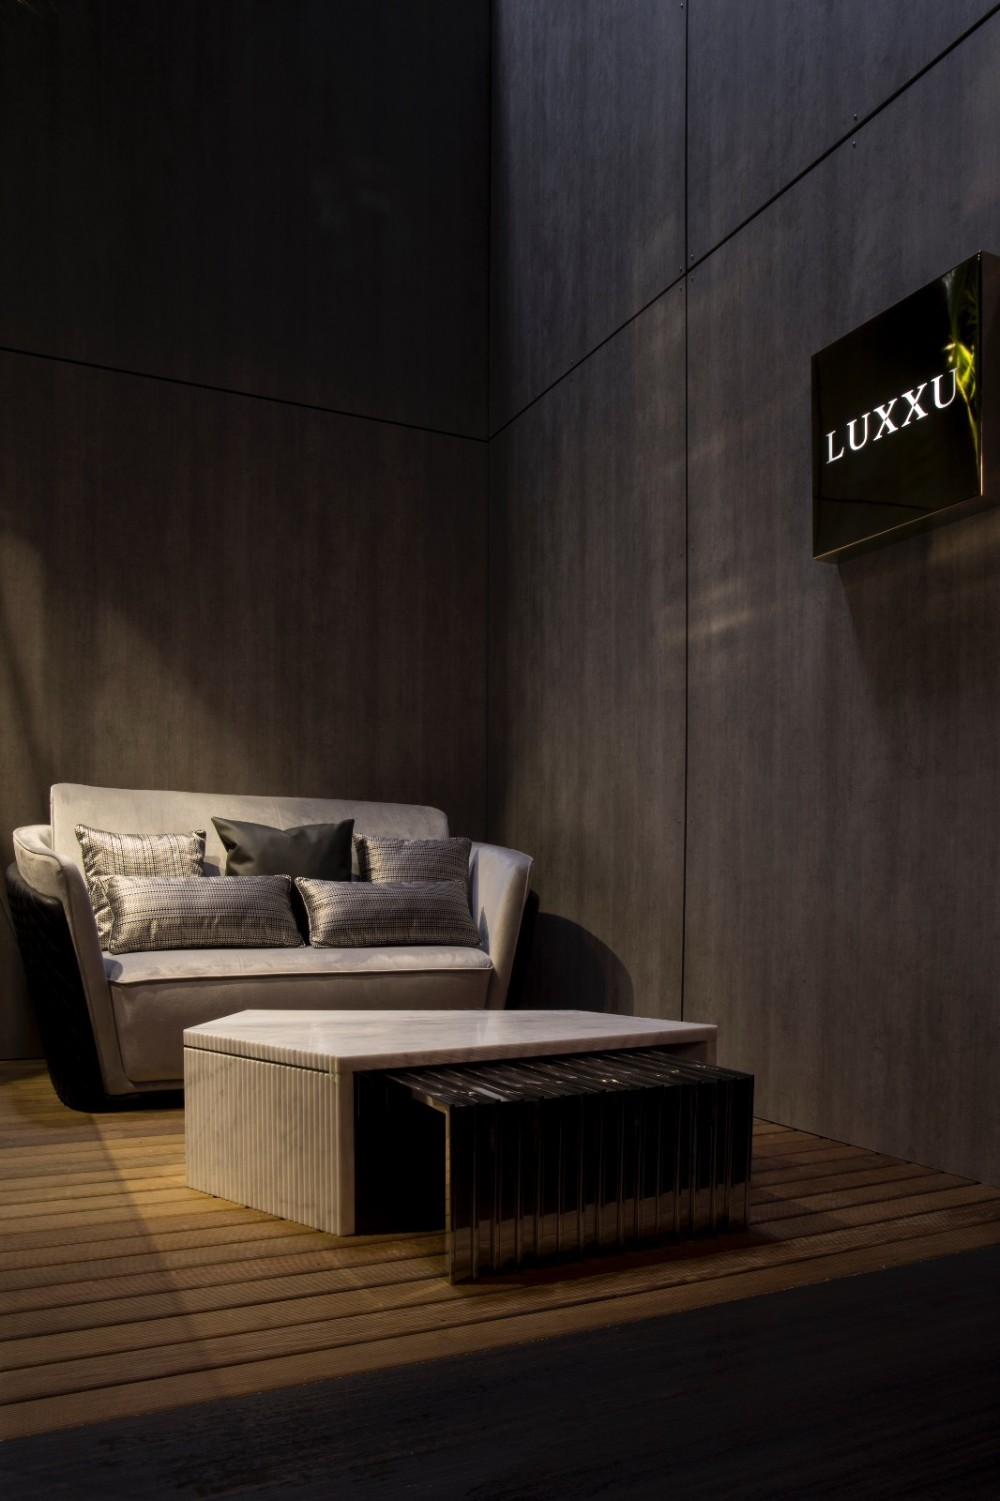 Meet LUXXU's New Furniture Designs At iSaloni 2019 05 new furniture designs Meet LUXXU's New Furniture Designs At iSaloni 2019 Meet LUXXU   s New Furniture Designs At iSaloni 2019 05